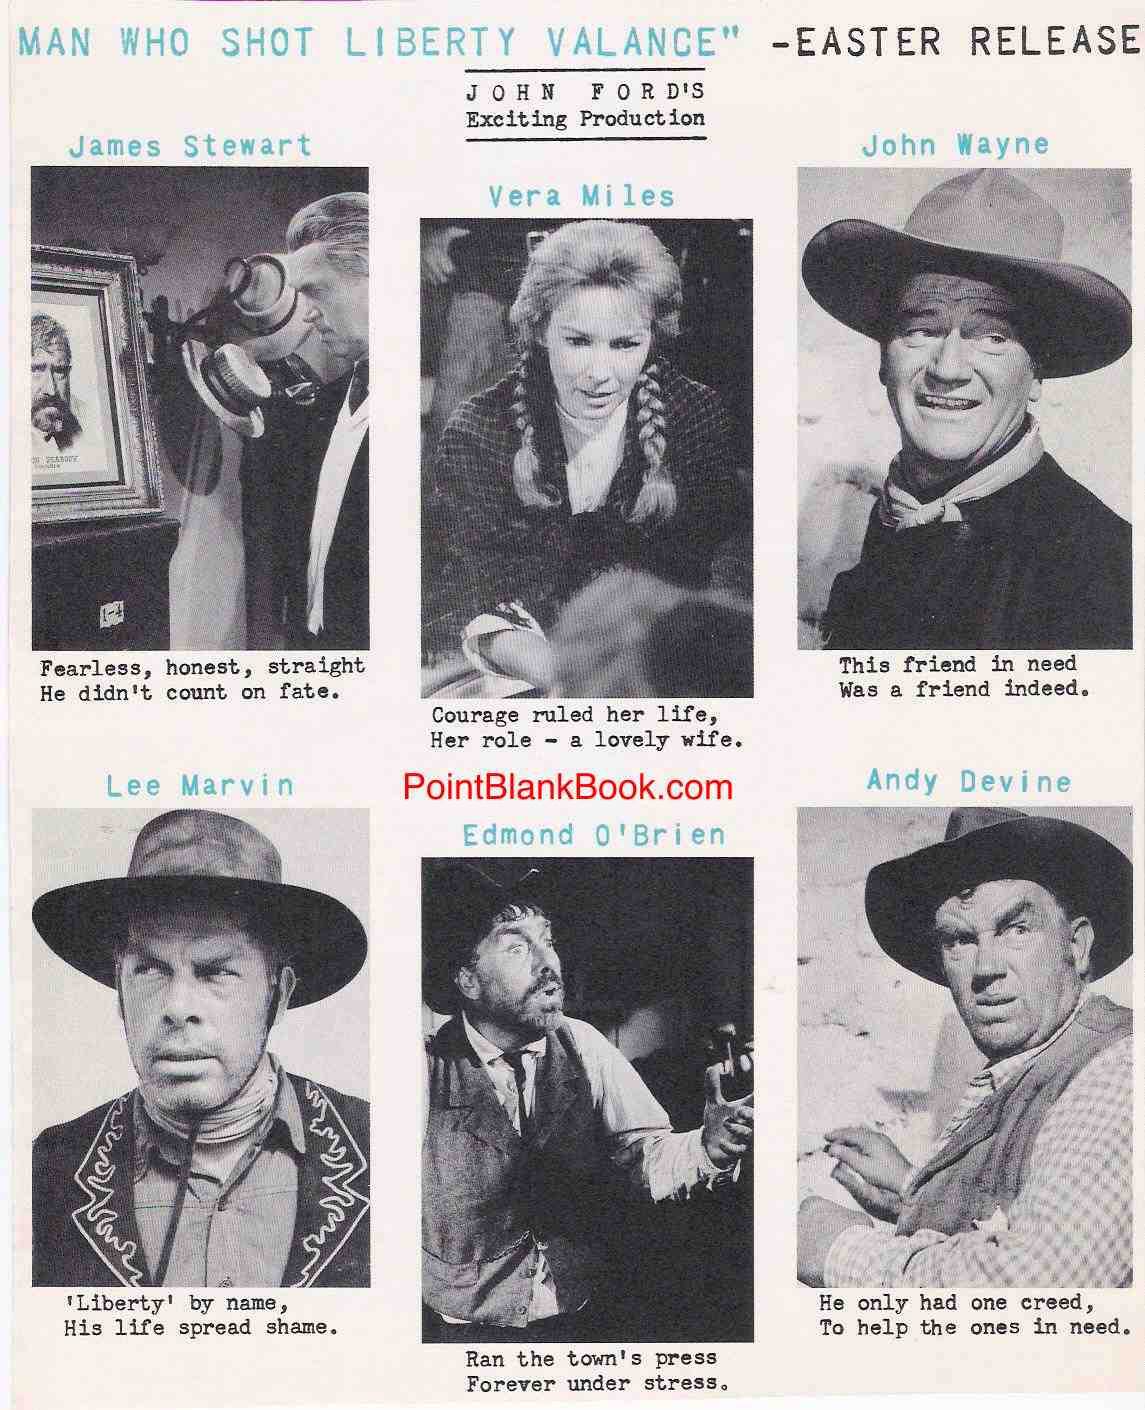 A pre-release ad from a movie magazine in which the p.r. people had some rhyming fun.